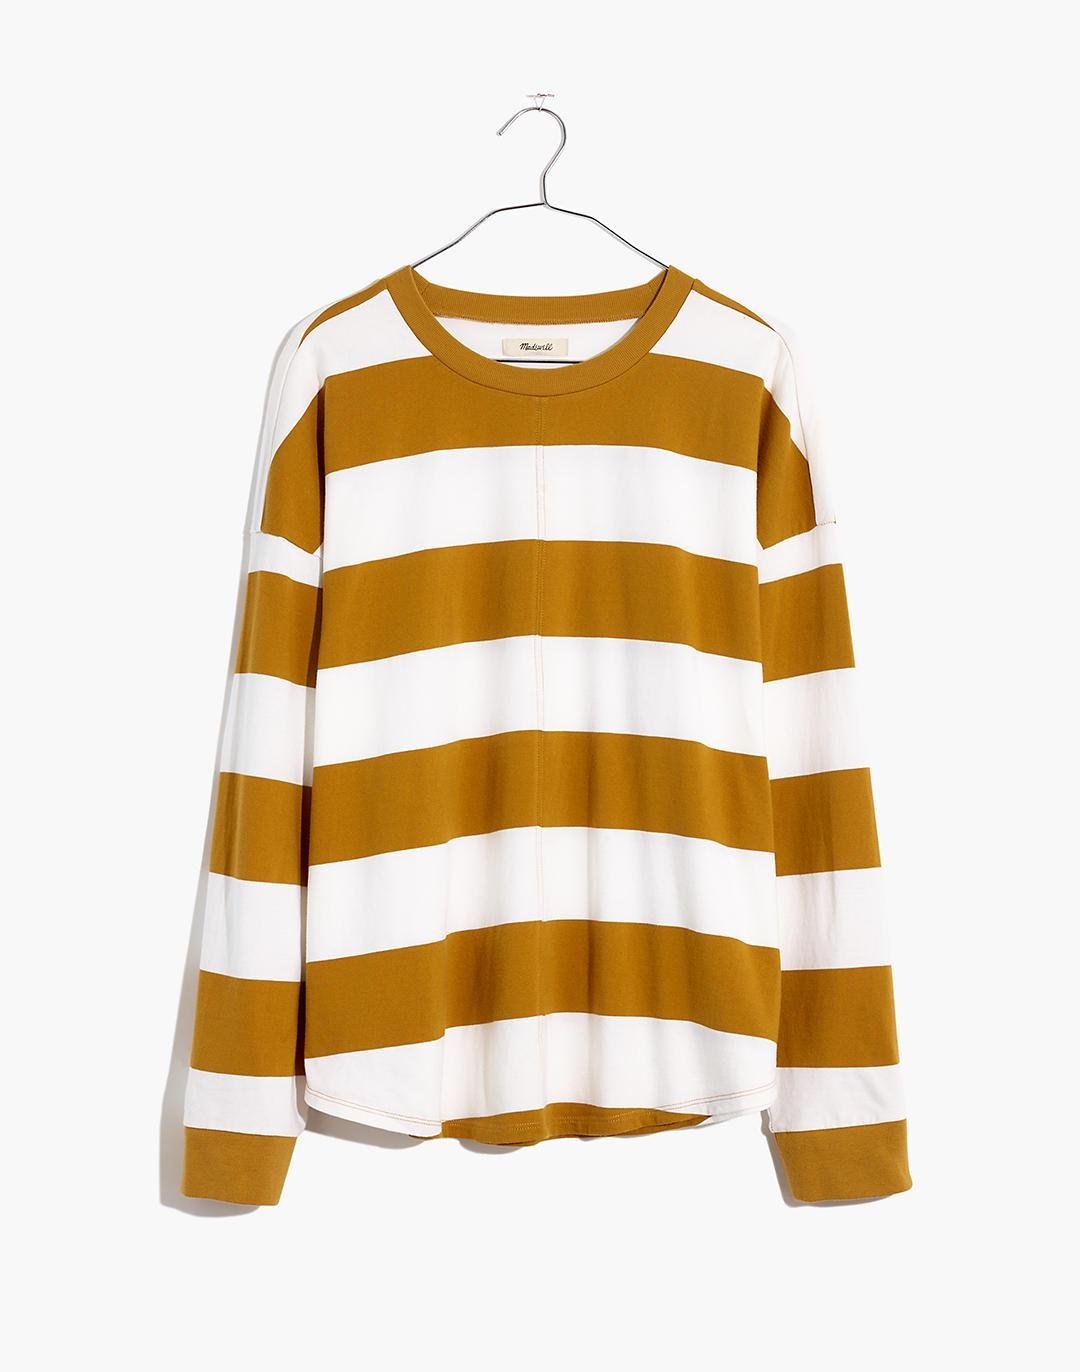 (Re)sourced Cotton Newville Tee in Lindell Stripe 4